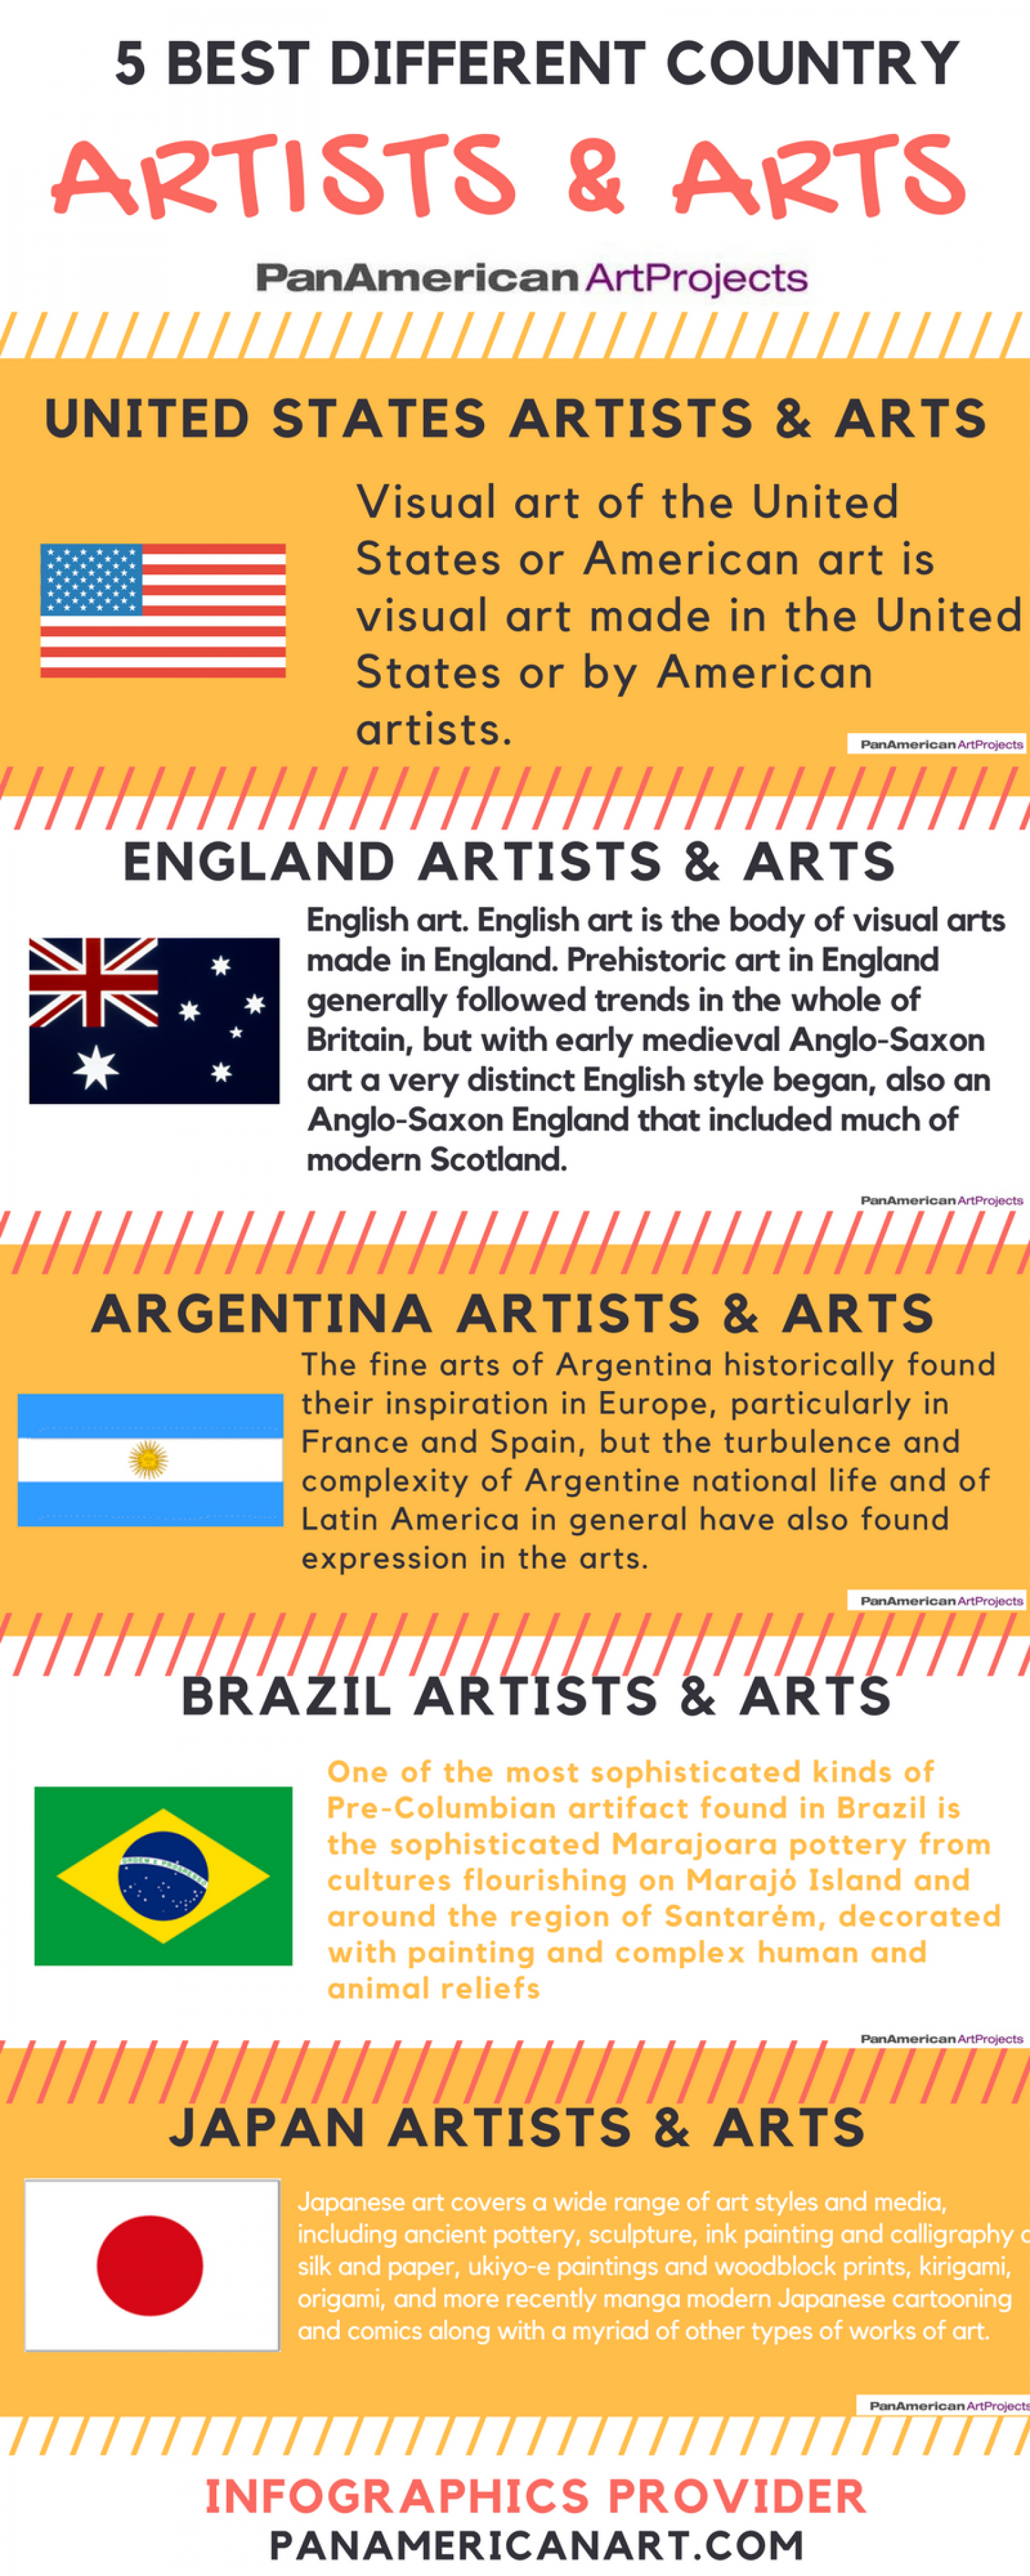 5 Best Different Countries Artist & Arts | Pan American Art Projects Infographic